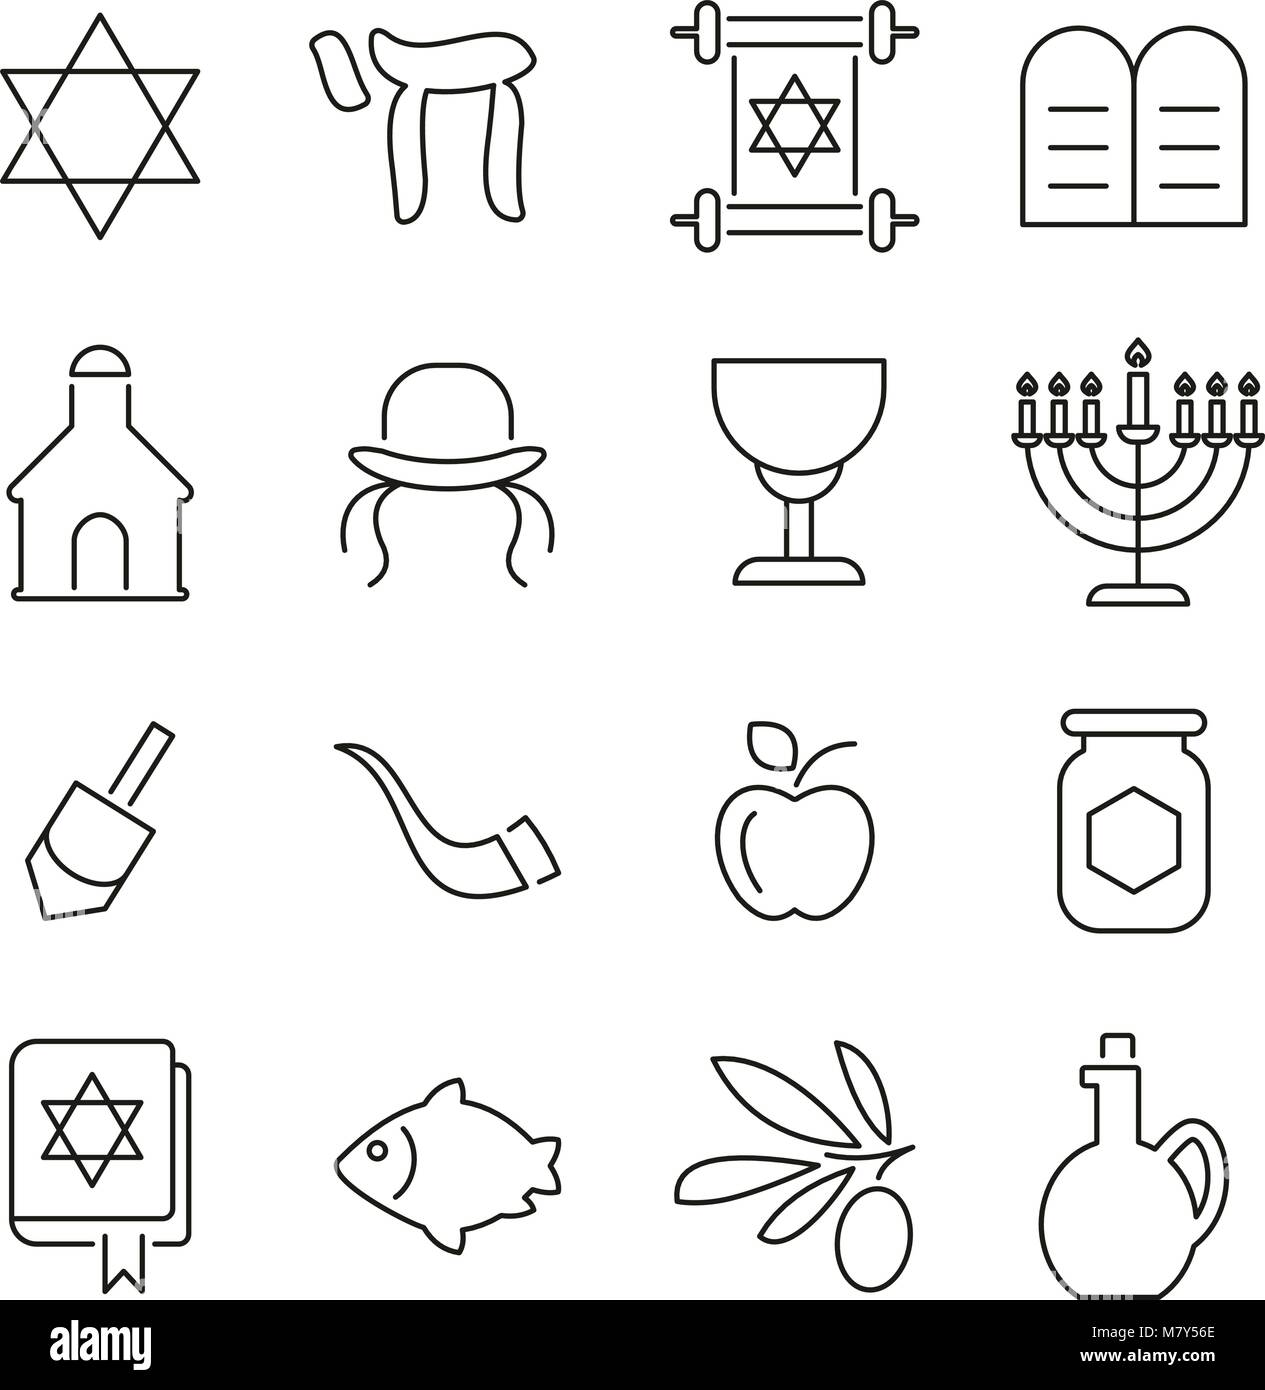 Judaism Religion & Religious Items Icons Thin Line Vector Illustration Set Stock Vector